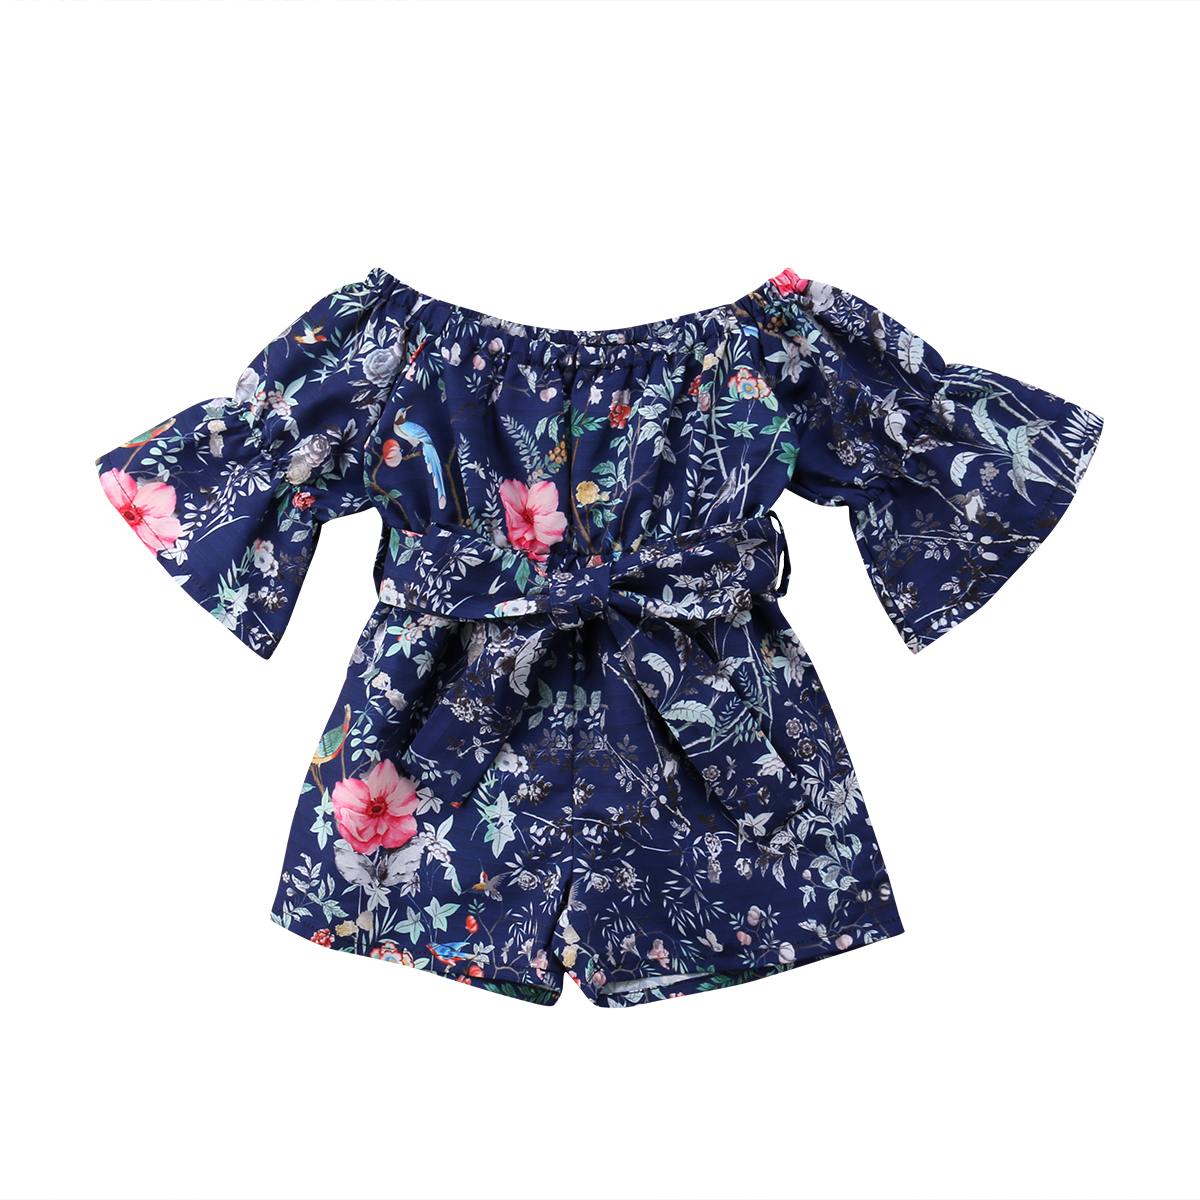 23bfabfc0e7b US Kids Baby Girl Off shoulder Ruffle Romper Jumpsuits floral lace up loose  cute Outfit Clothes-in Rompers from Mother   Kids on Aliexpress.com